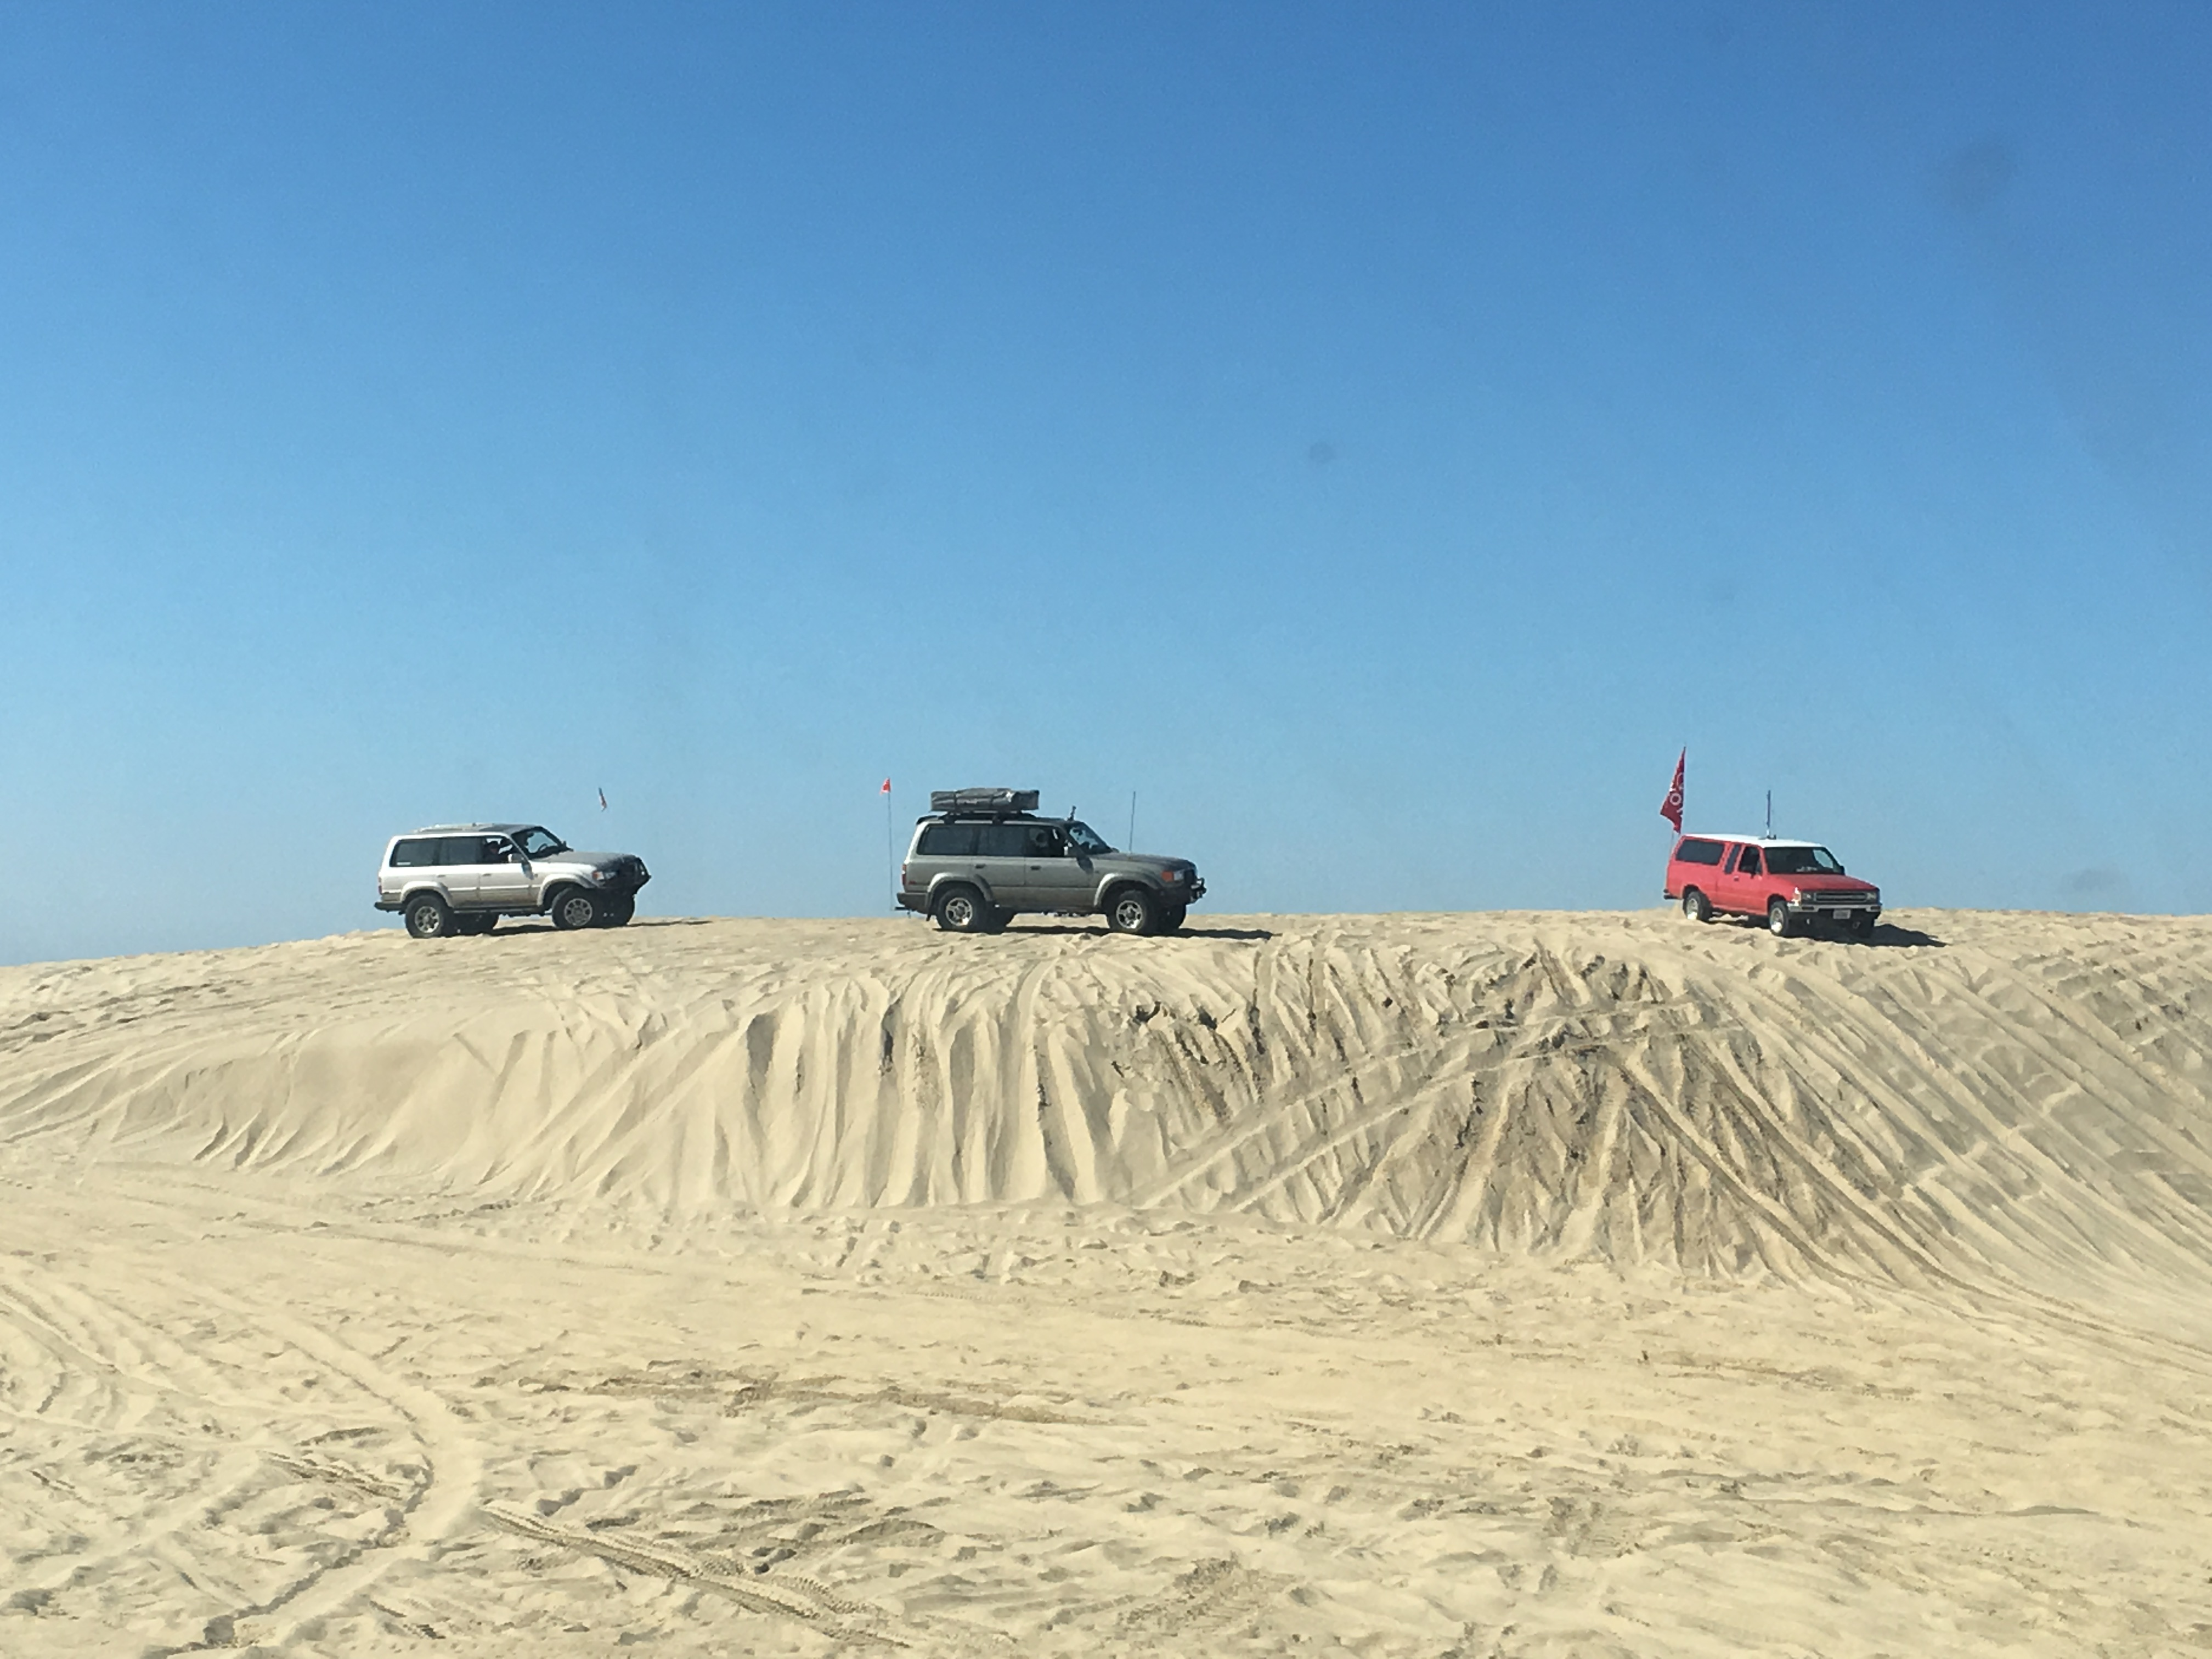 Two Toyota Land Cruisers & A Pickup